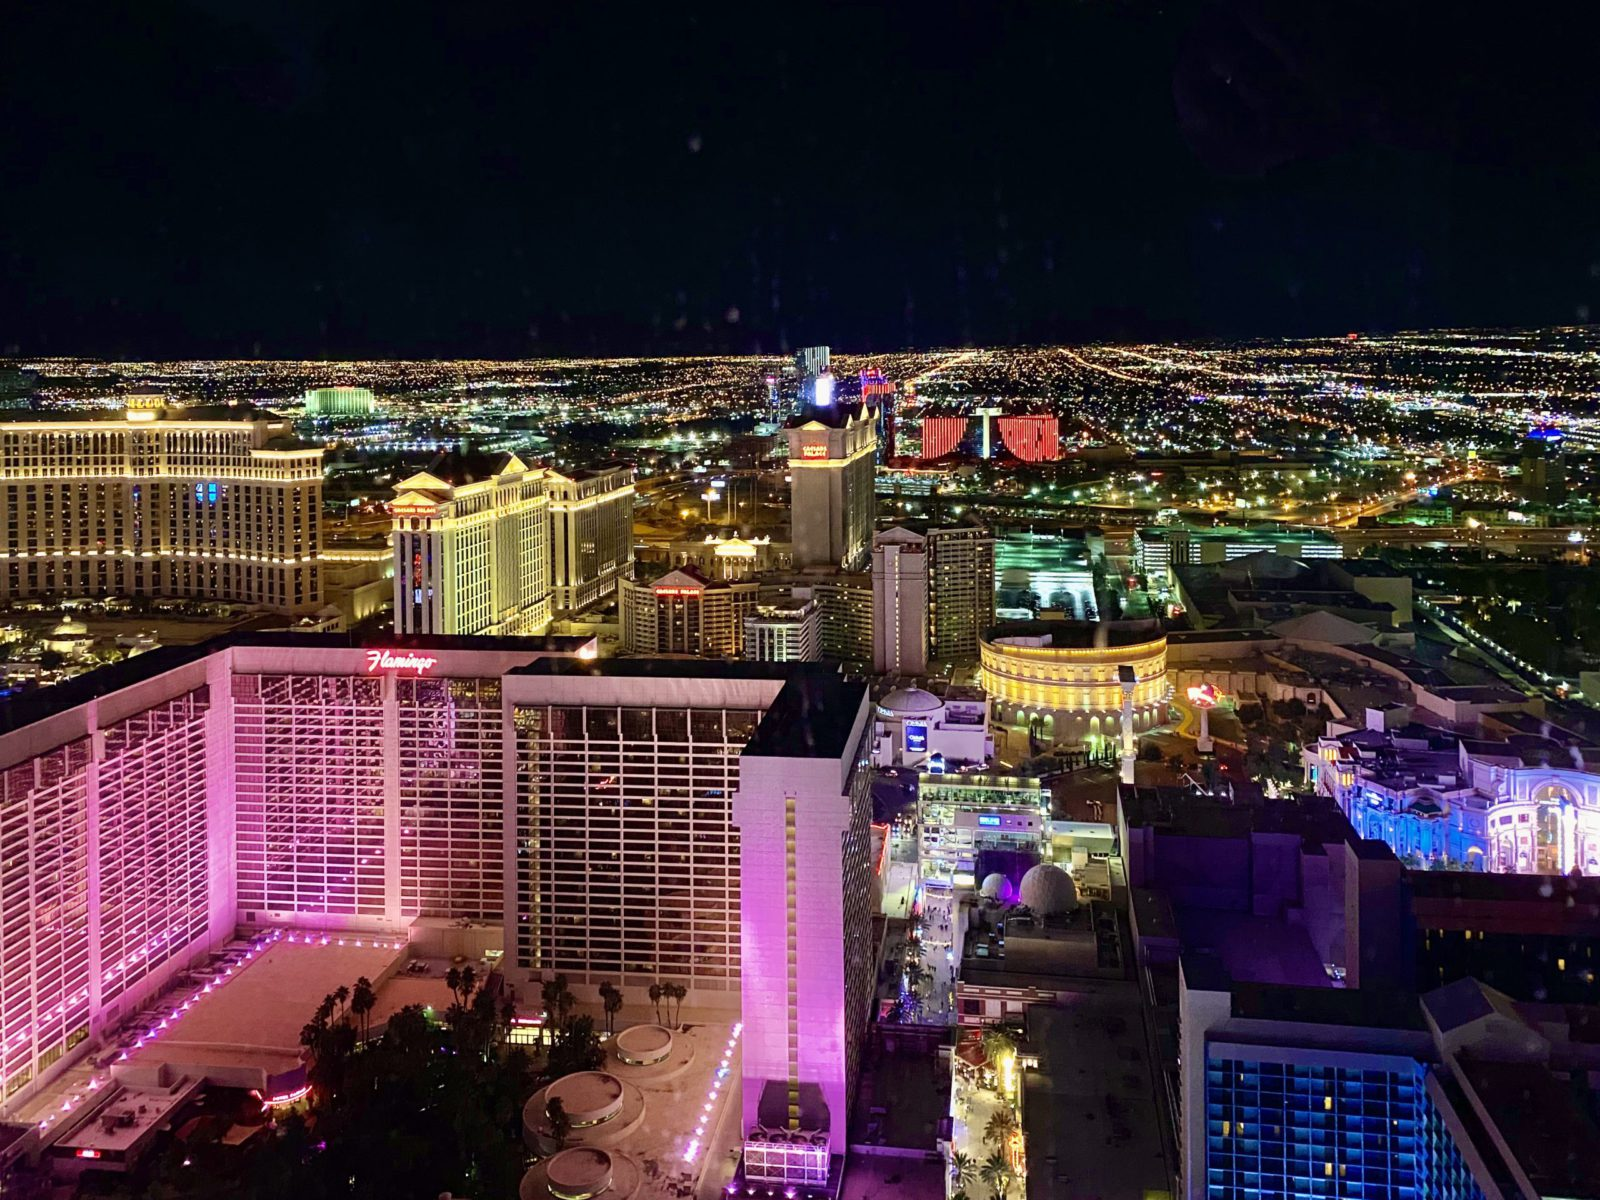 Flight Deal Round Trip From New York Area to Las Vegas #newyork #lasvegas #extendedweekend